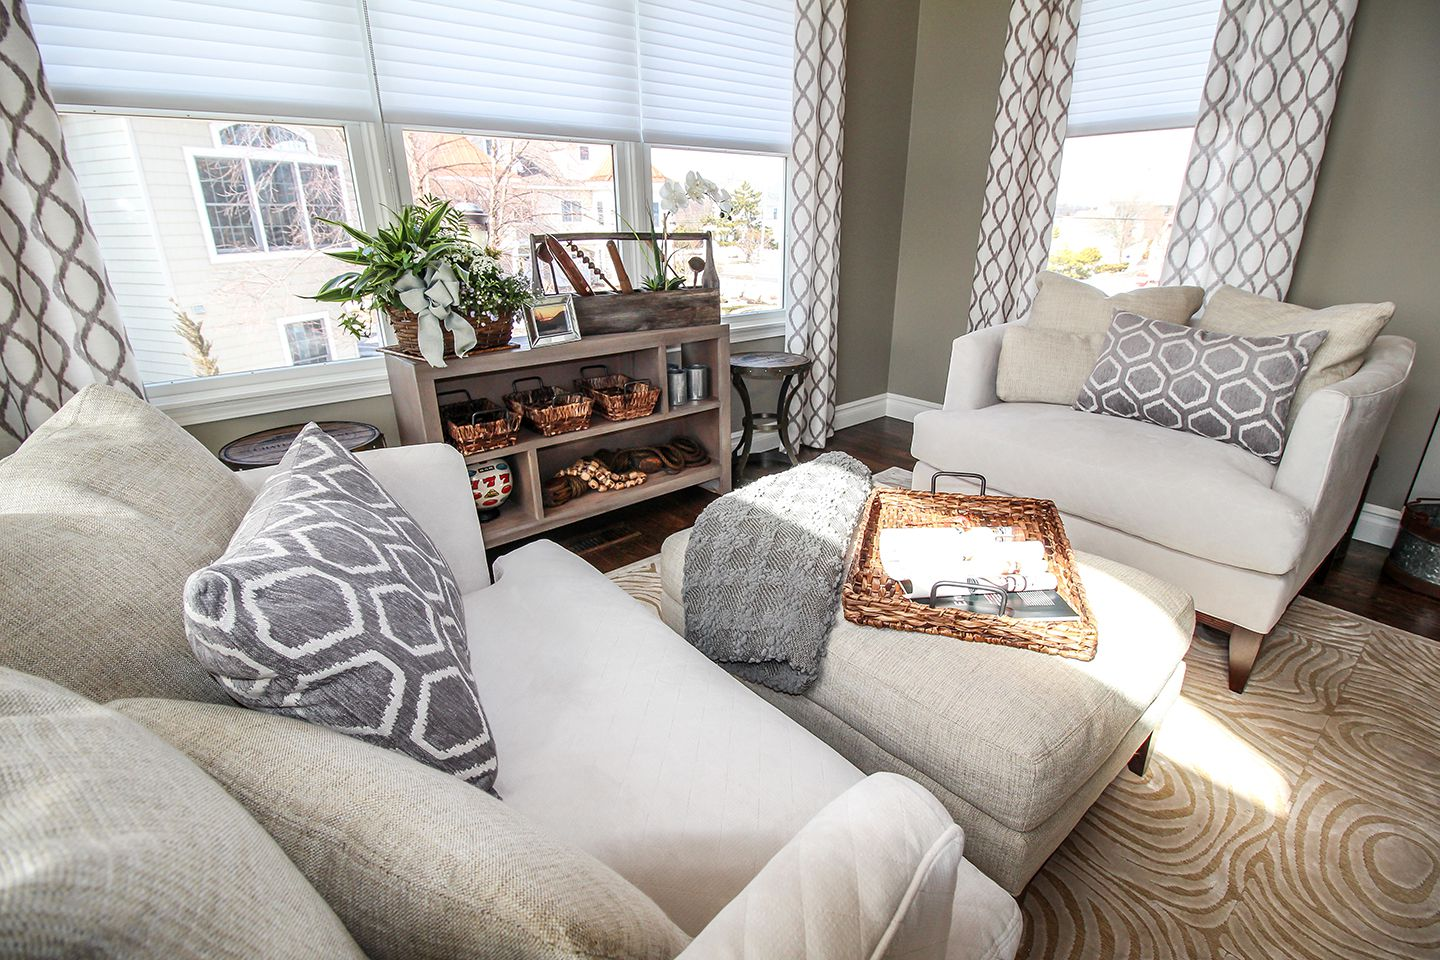 oversized upholstered chairs with transitional accessories